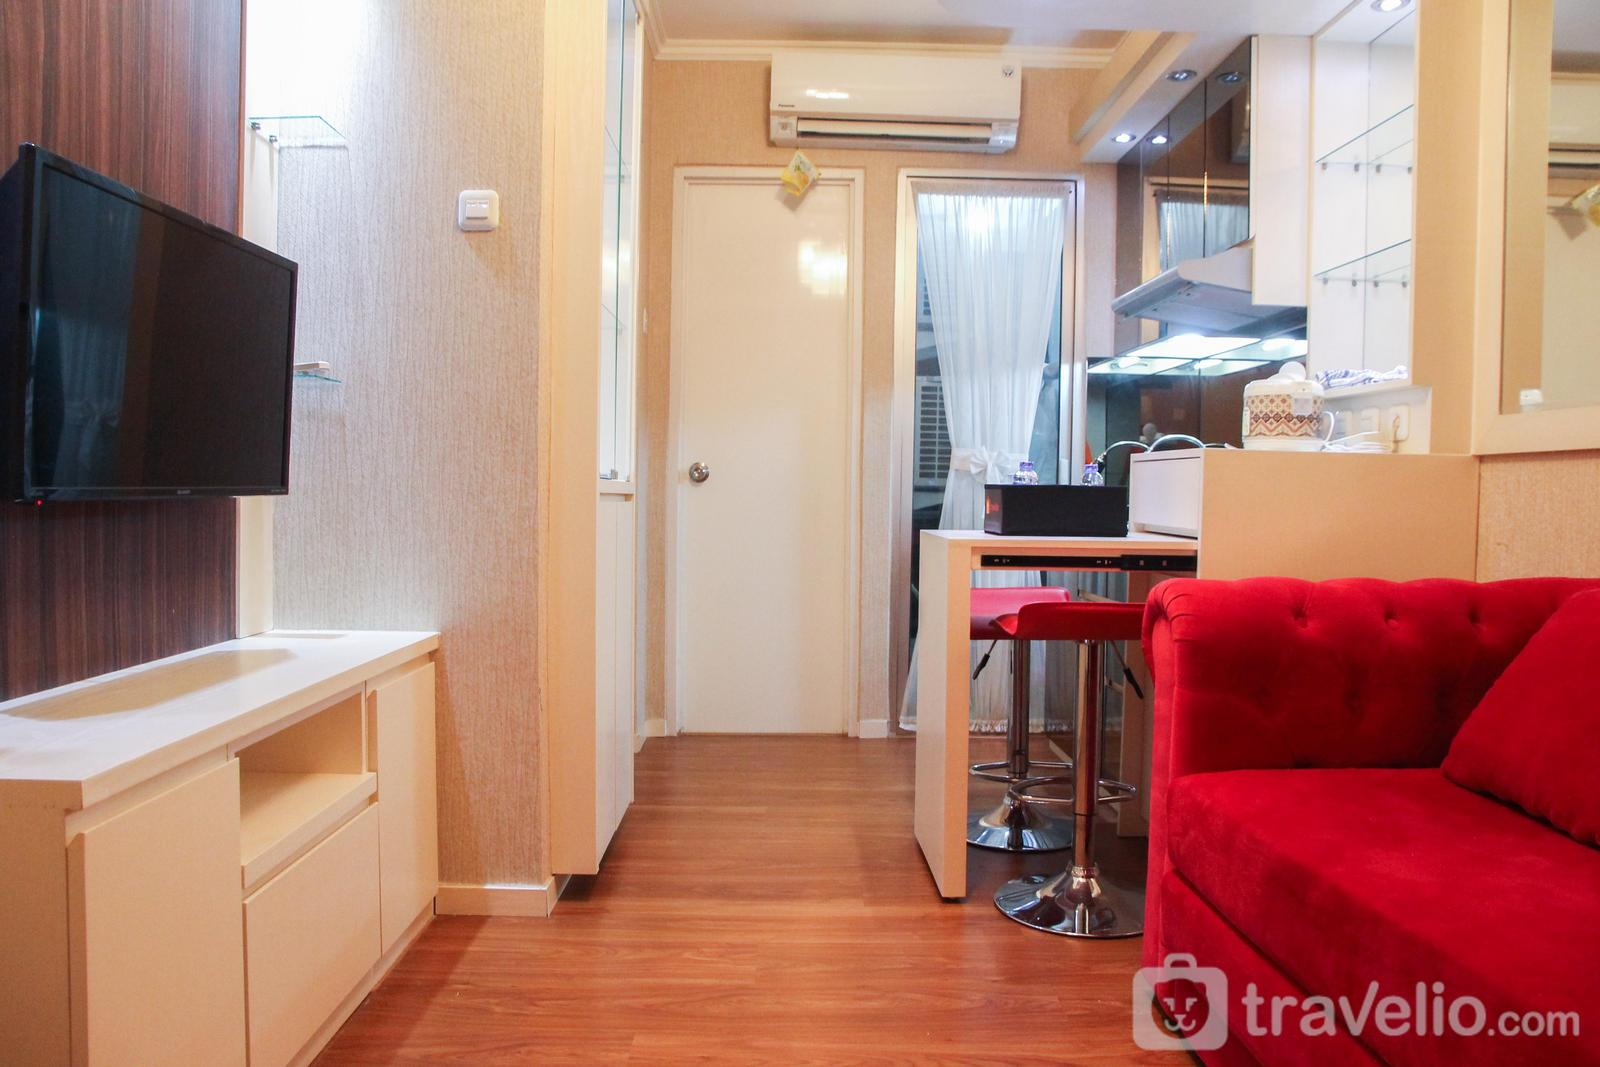 Green Palace Kalibata - Modern 2BR Green Palace Kalibata City Apartment By Travelio